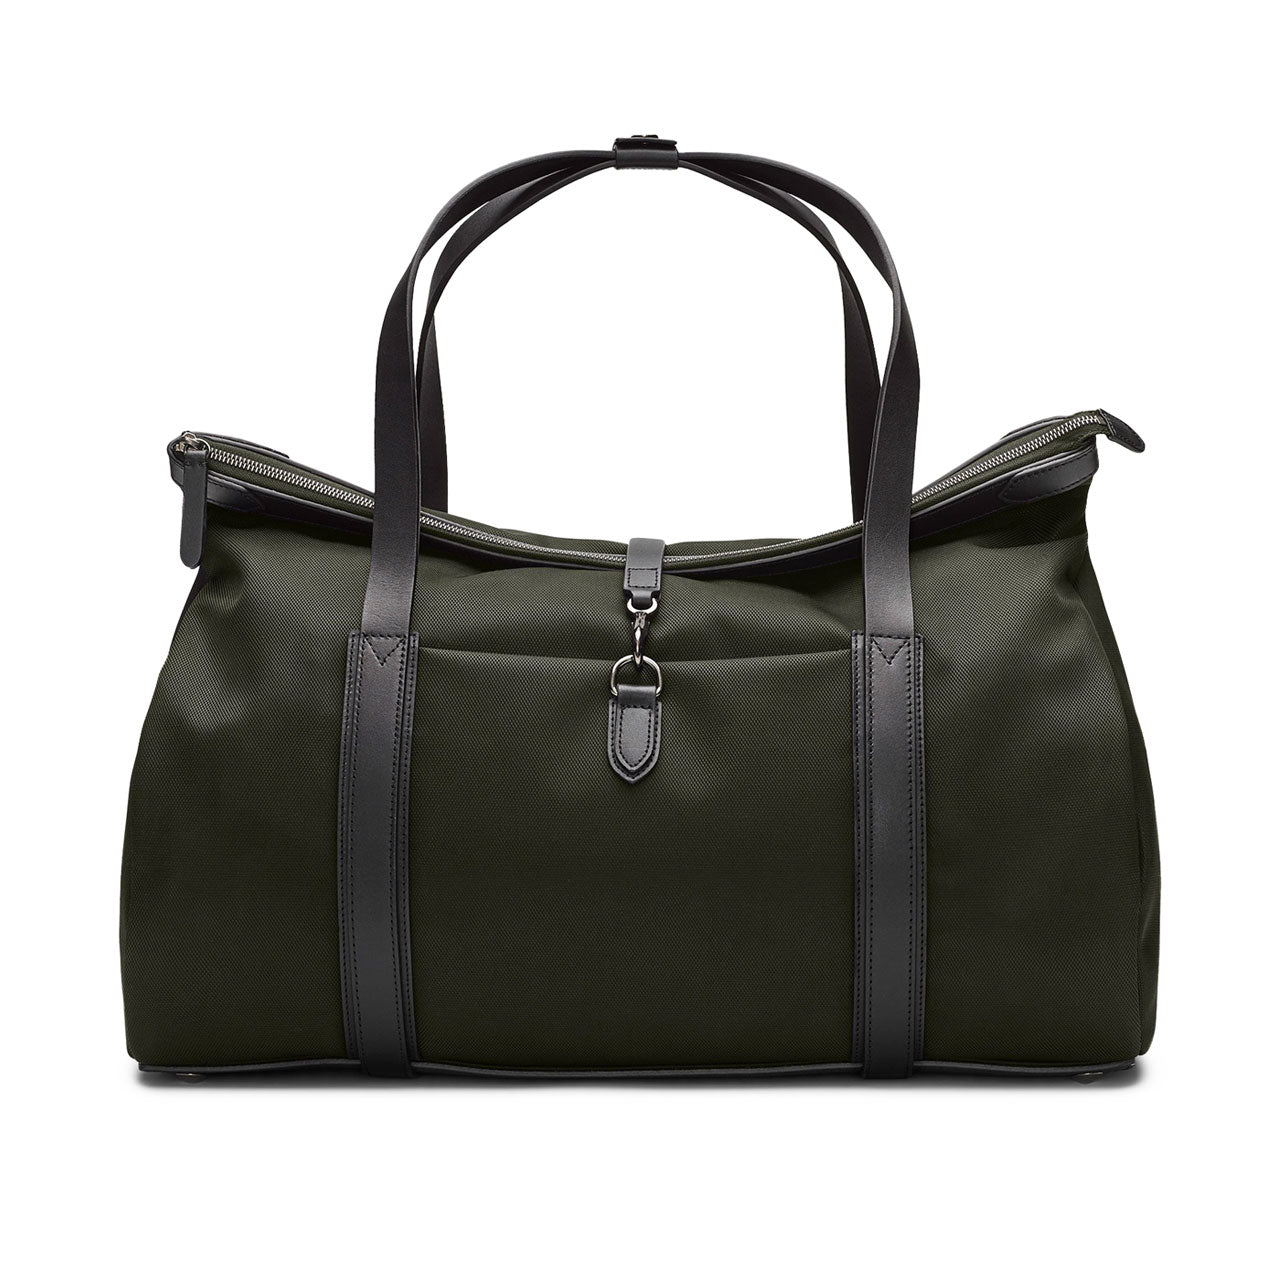 Mismo M/S Adventurer Duffle Bag